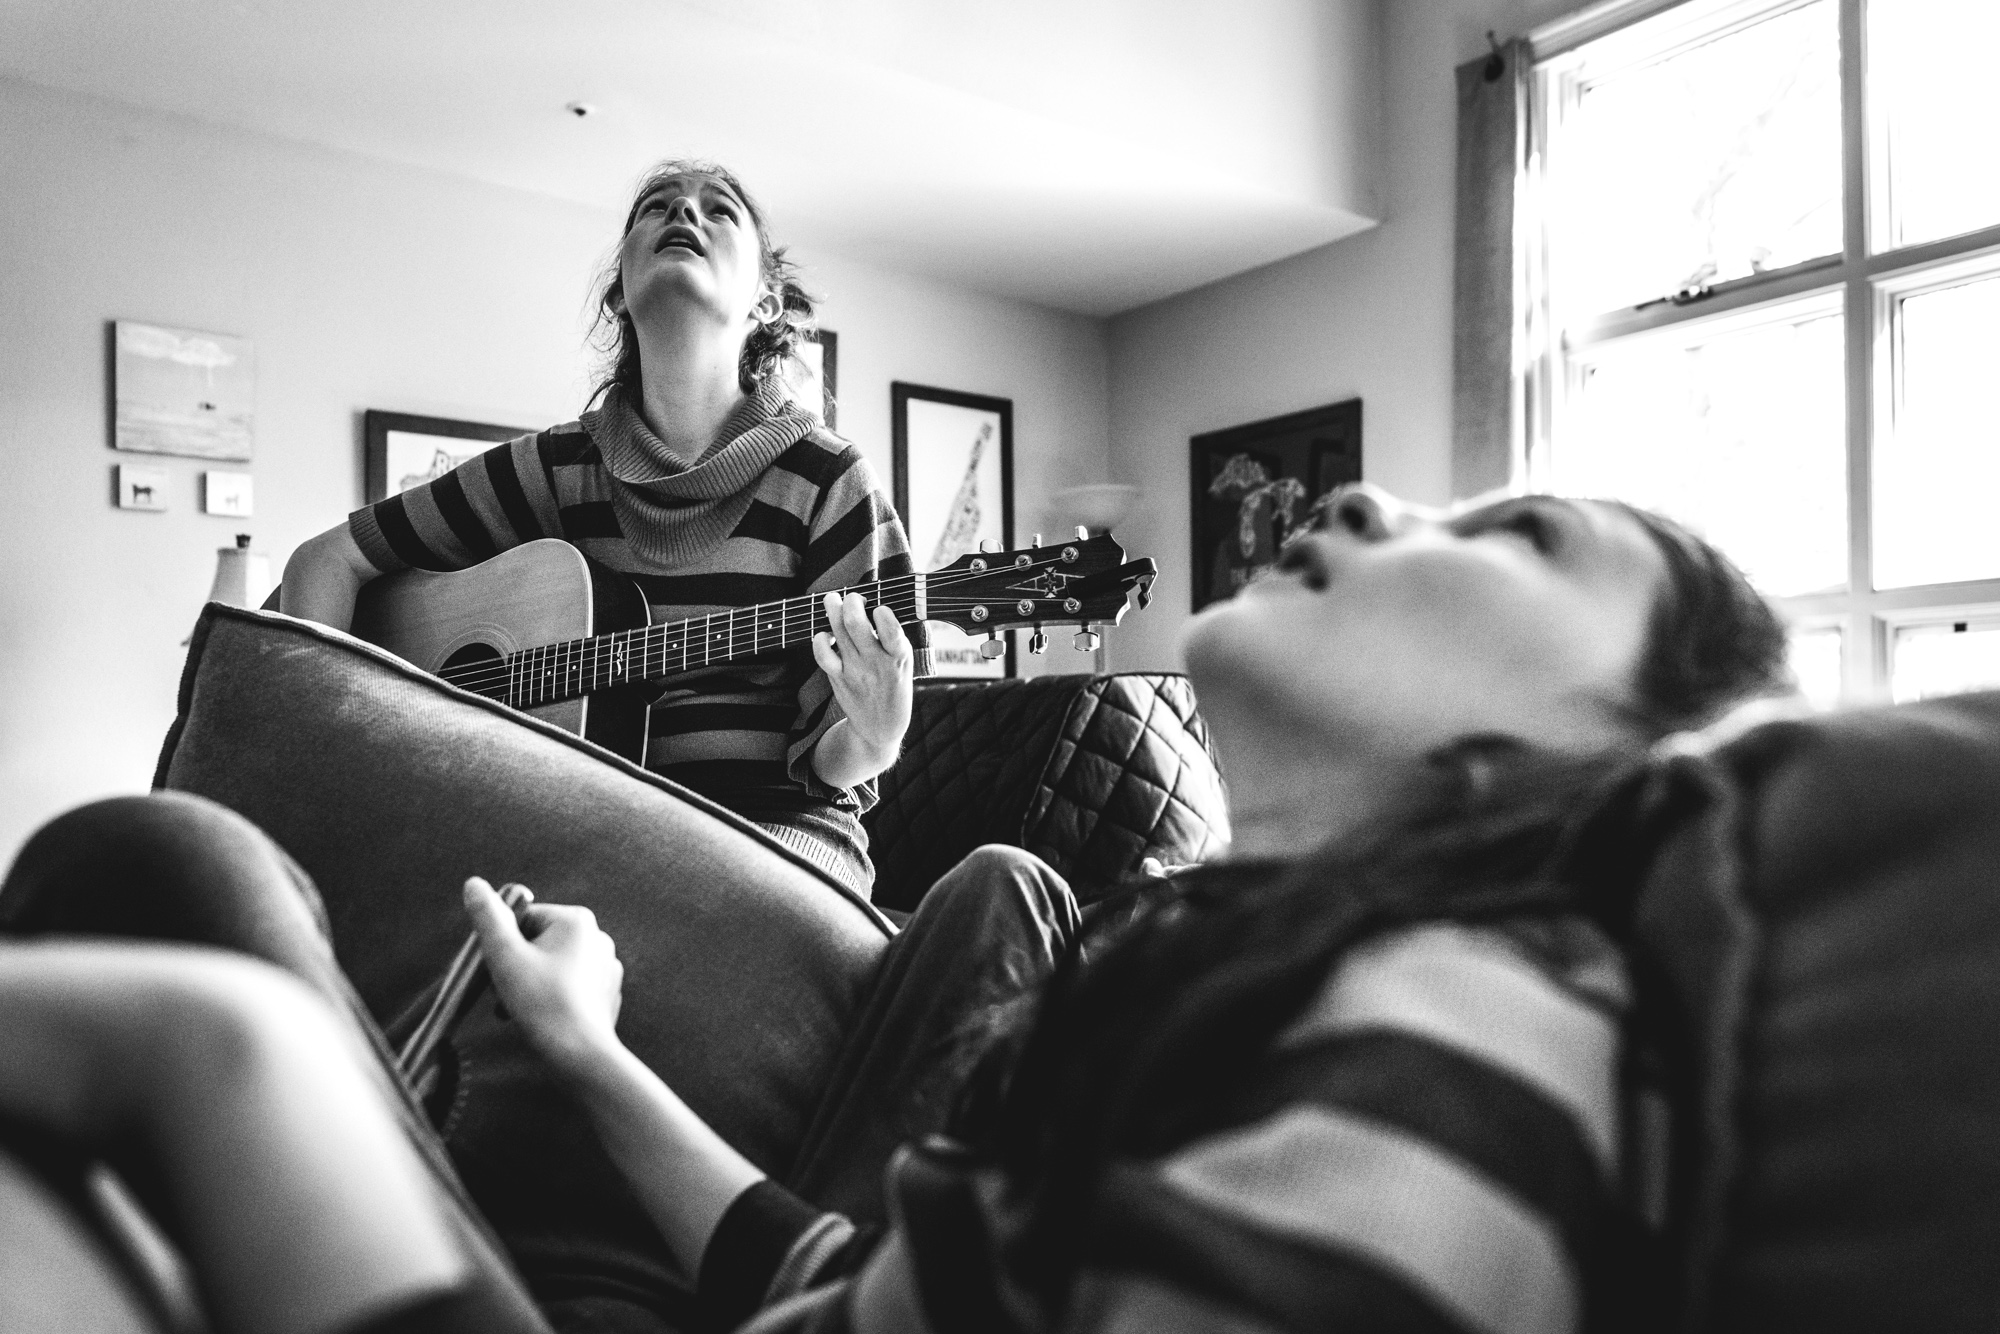 Two children sitting on a couch, one with a guitar, look up